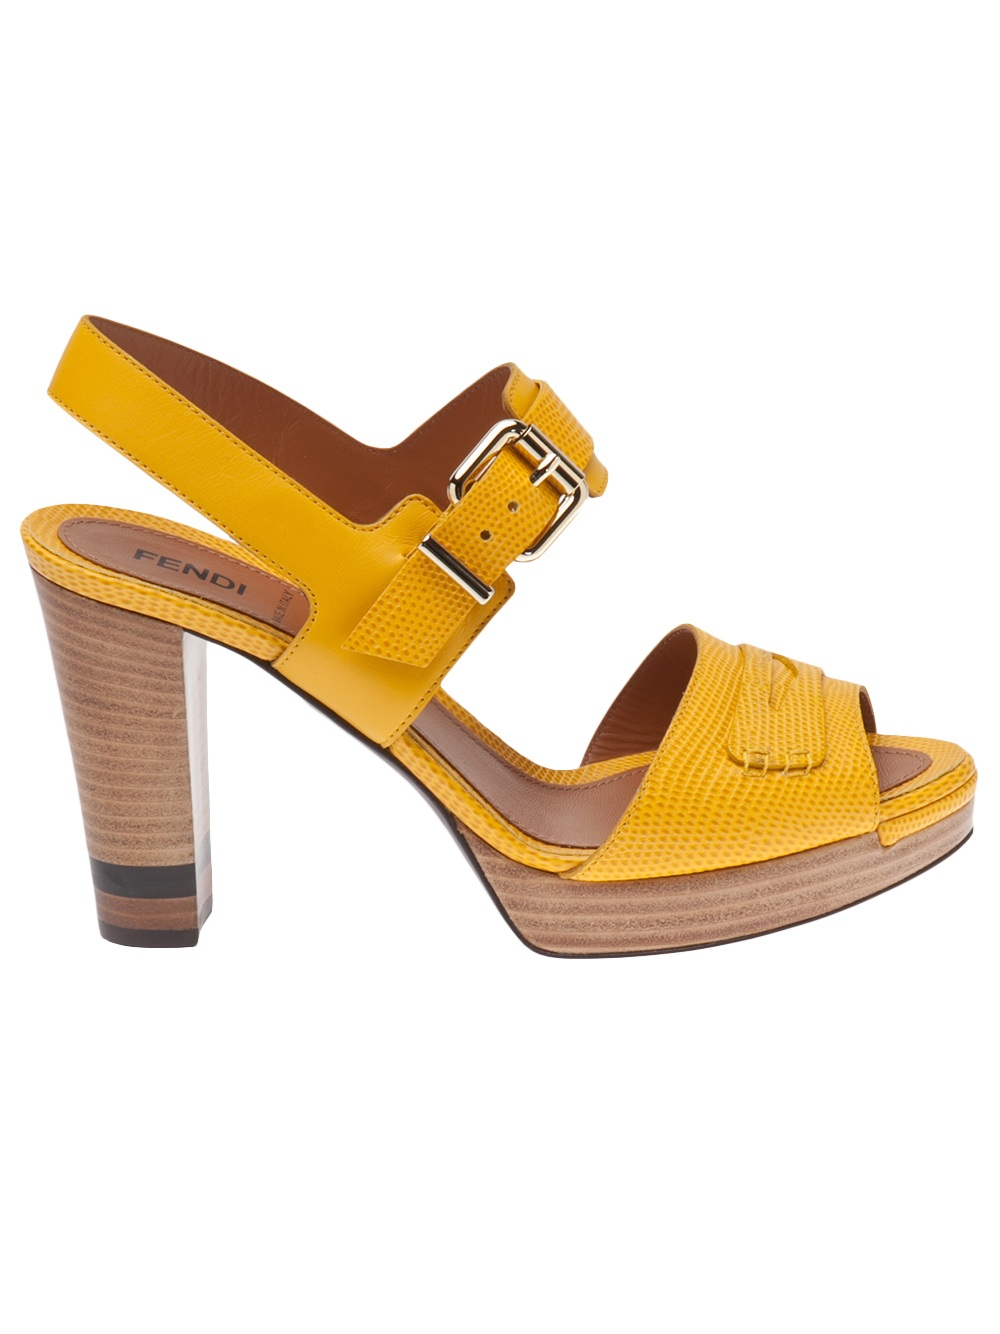 Fendi Block Heel Sandal in Yellow | Lyst